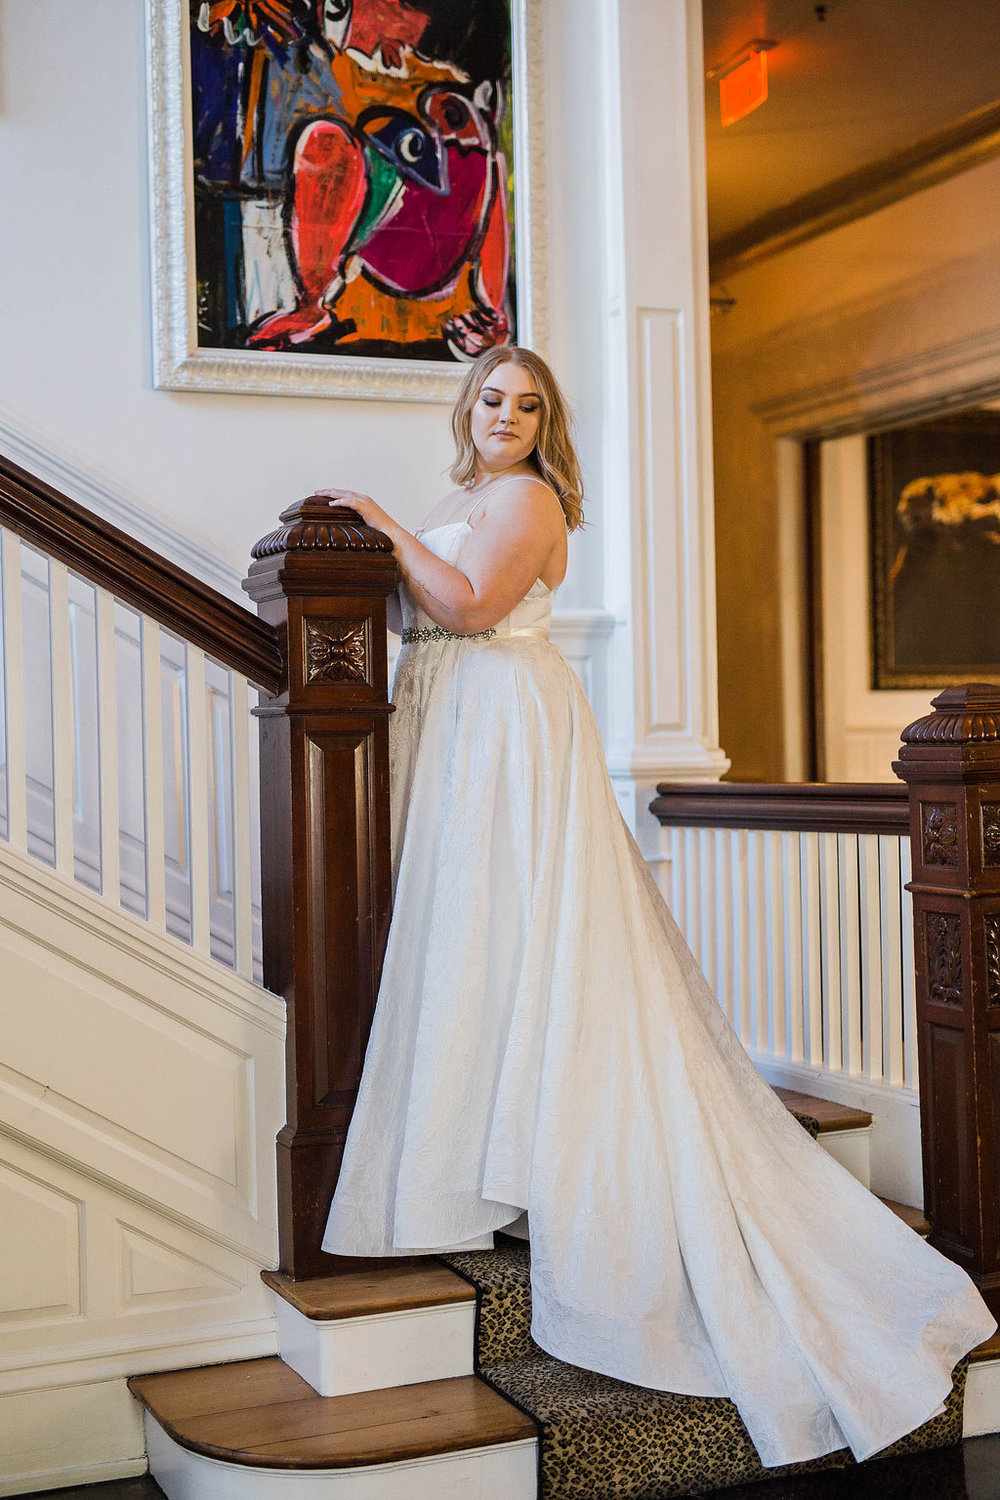 ivory-and-beau-bridal-boutique-savannah-wedding-dress-savannah-wedding-gown-savannah-bridal-boutique-savannah-bridesmaids-savannah-plus-sized-wedding-gowns-plus-sized-wedding-dresses-savannah-maggie-sottero-savannah-3.JPG